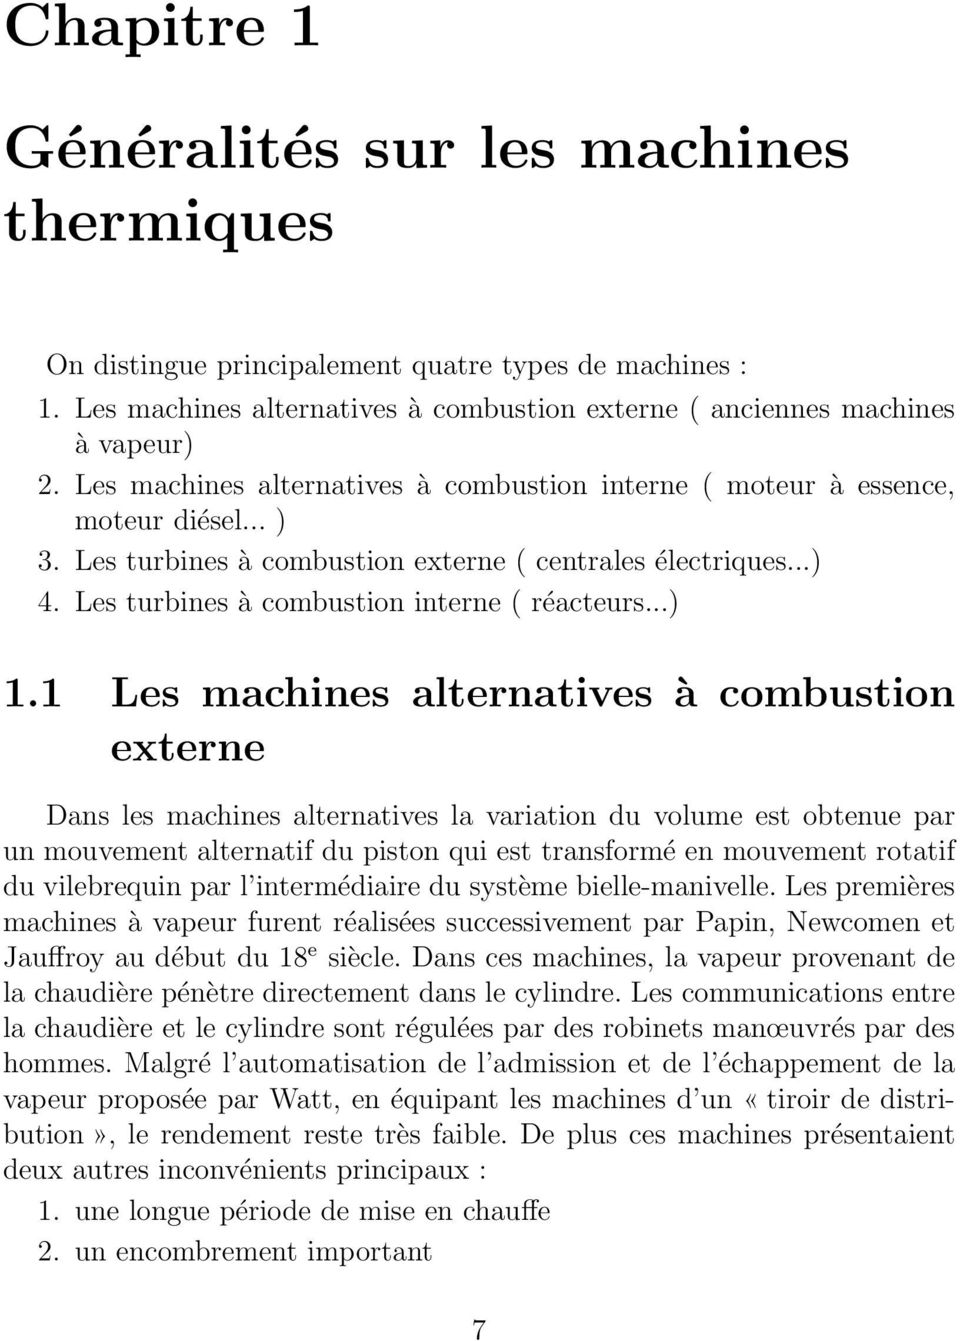 1 Les machines alternatives à combustion externe Dans les machines alternatives la variation du volume est obtenue par un mouvement alternatif du piston qui est transformé en mouvement rotatif du